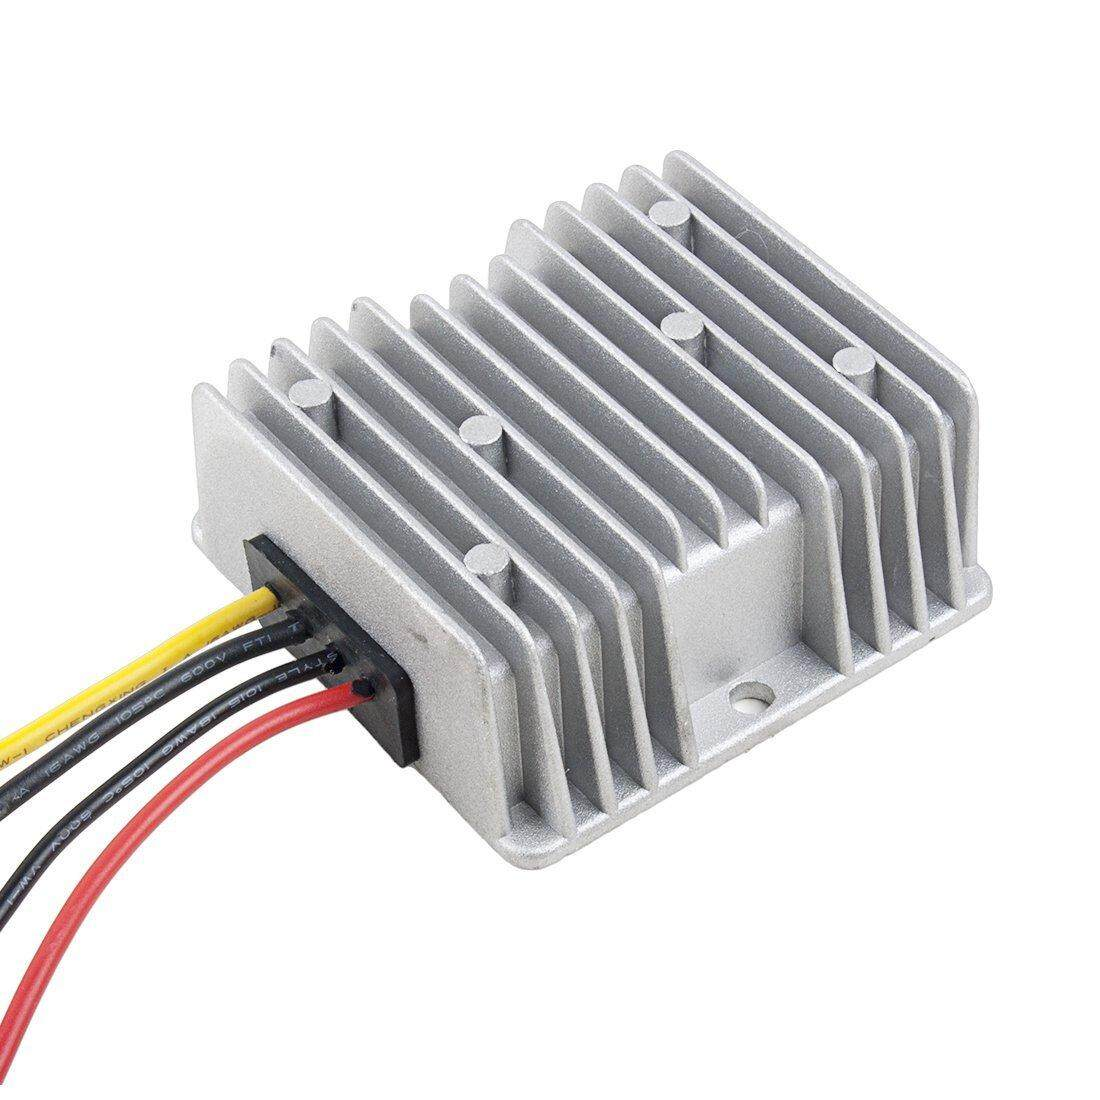 Power Converter Regulator Dc12v/24v Step-Down To Dc6v 15a 90w Waterproof Voltage Convert Transformer By Tobbehere.